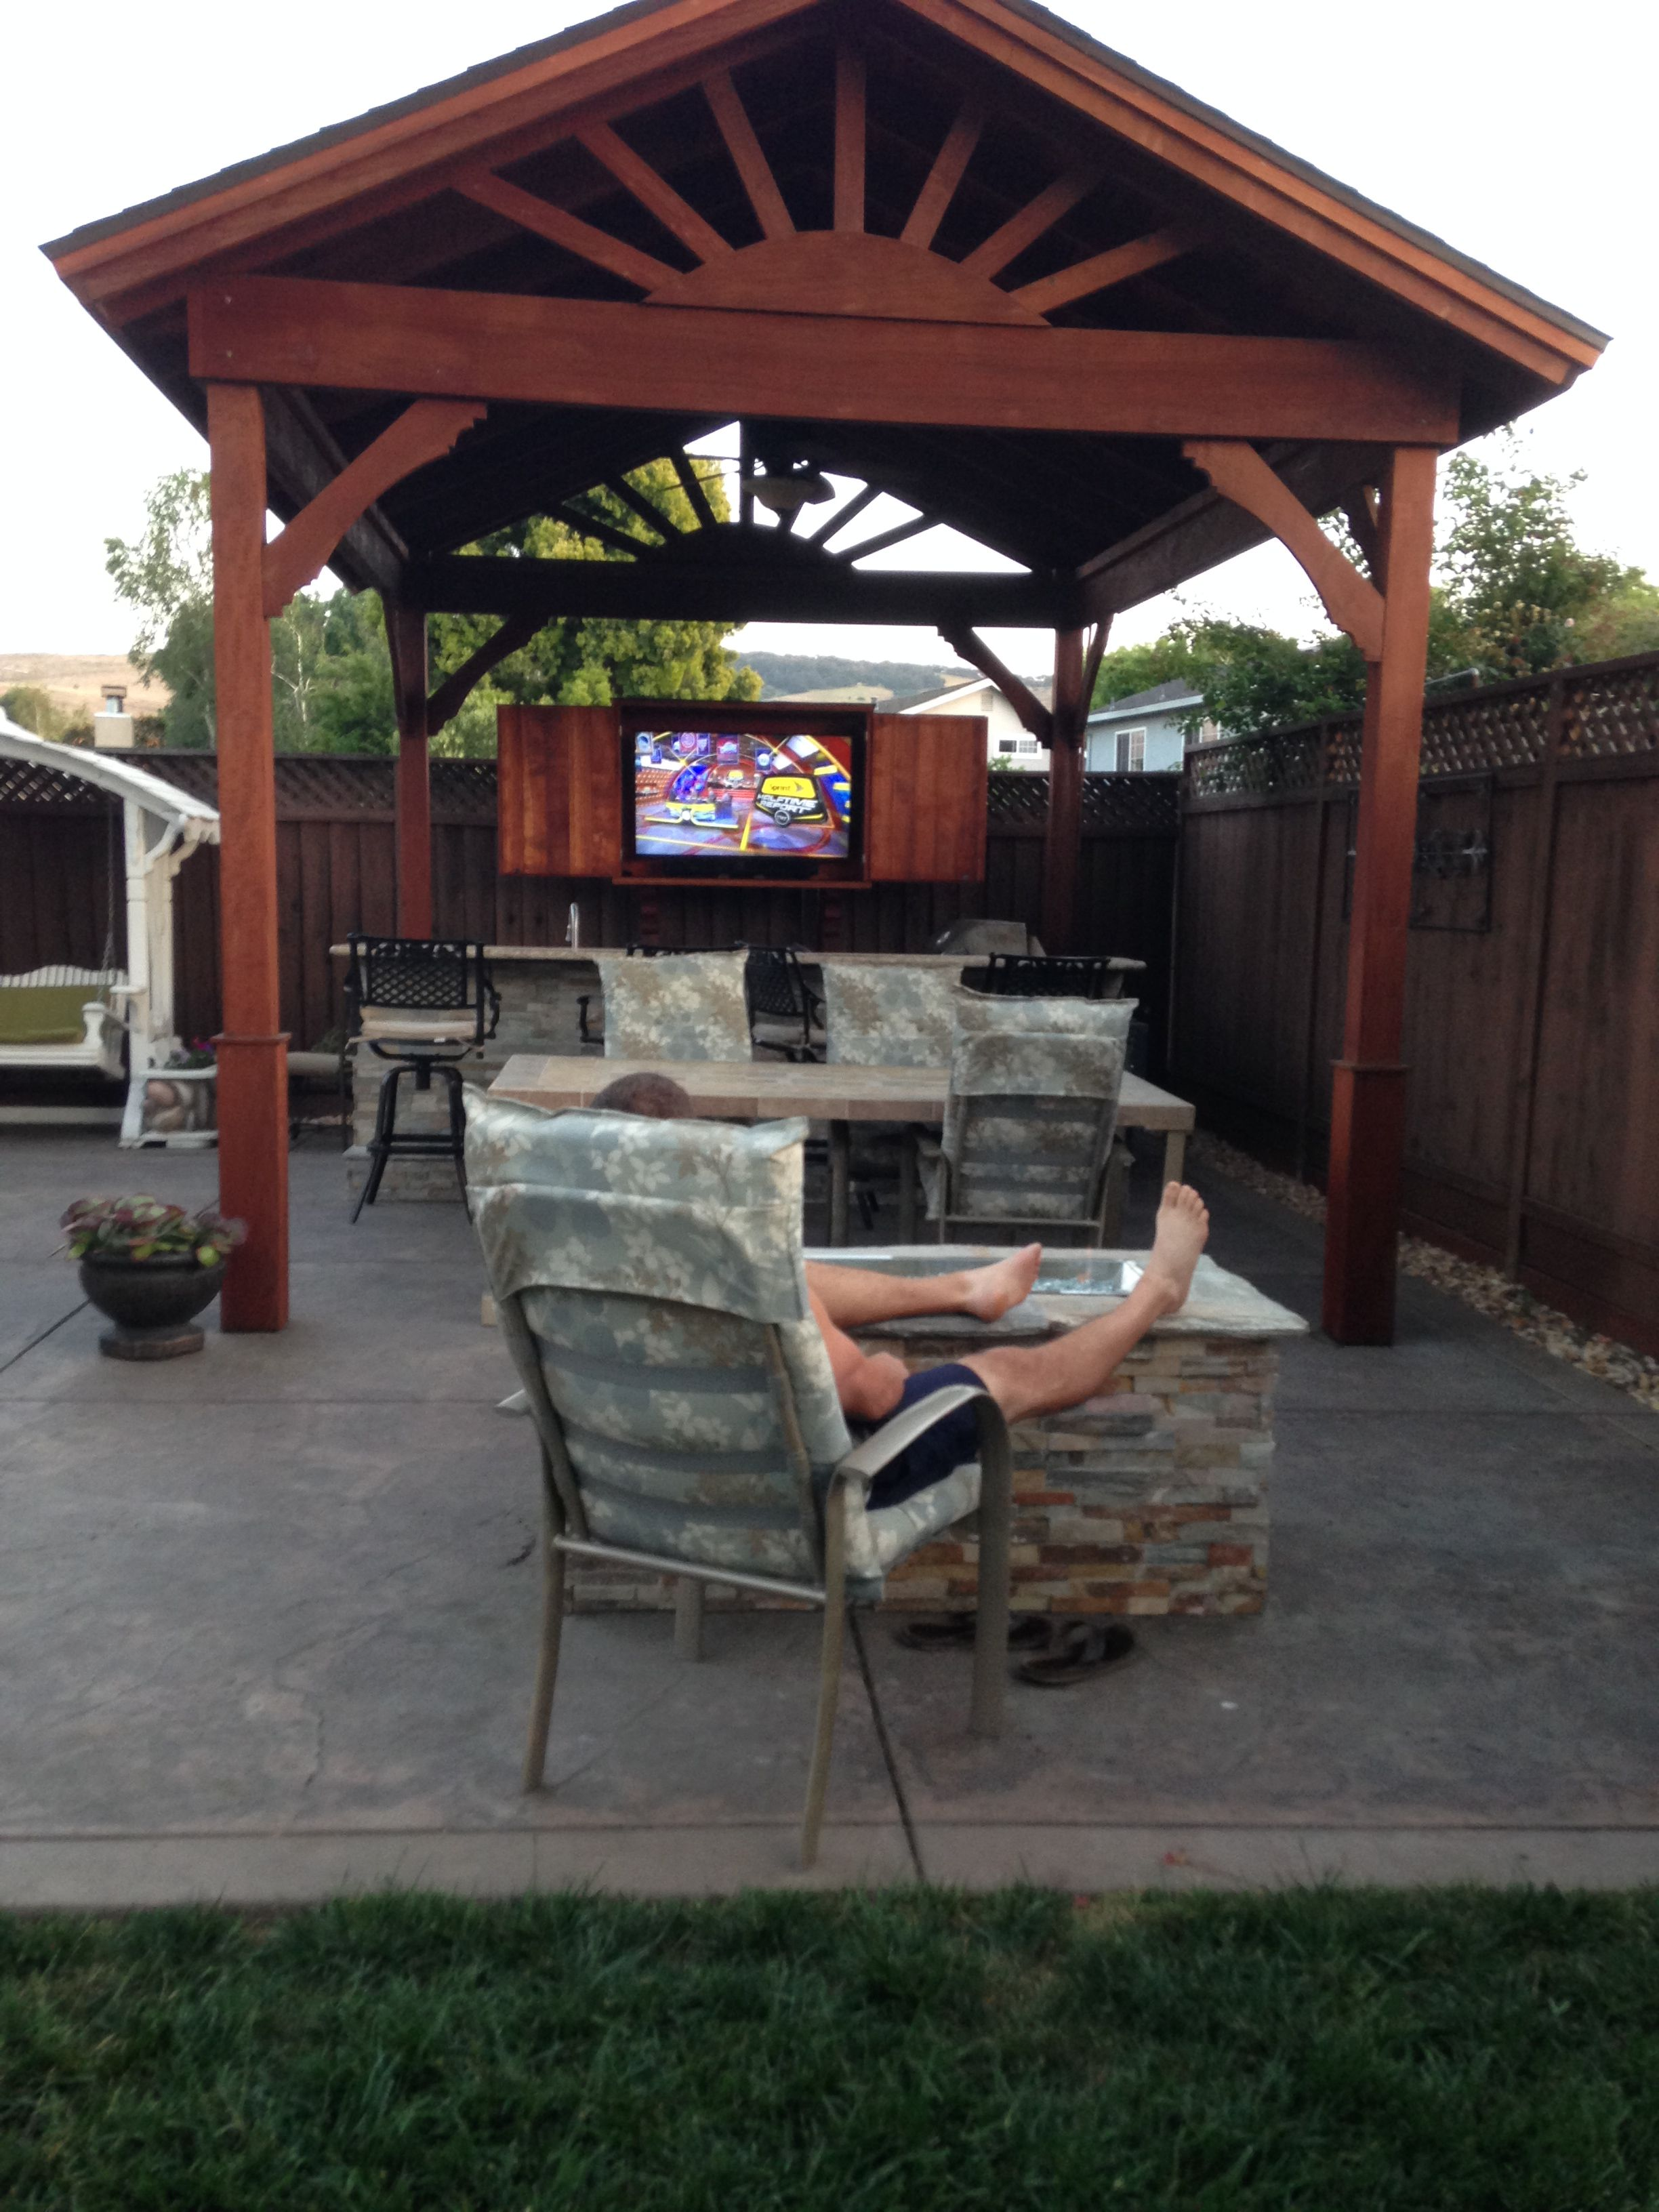 Kick Off The Football Season By Installing An Outdoor TV! Here Is 5 Things  You